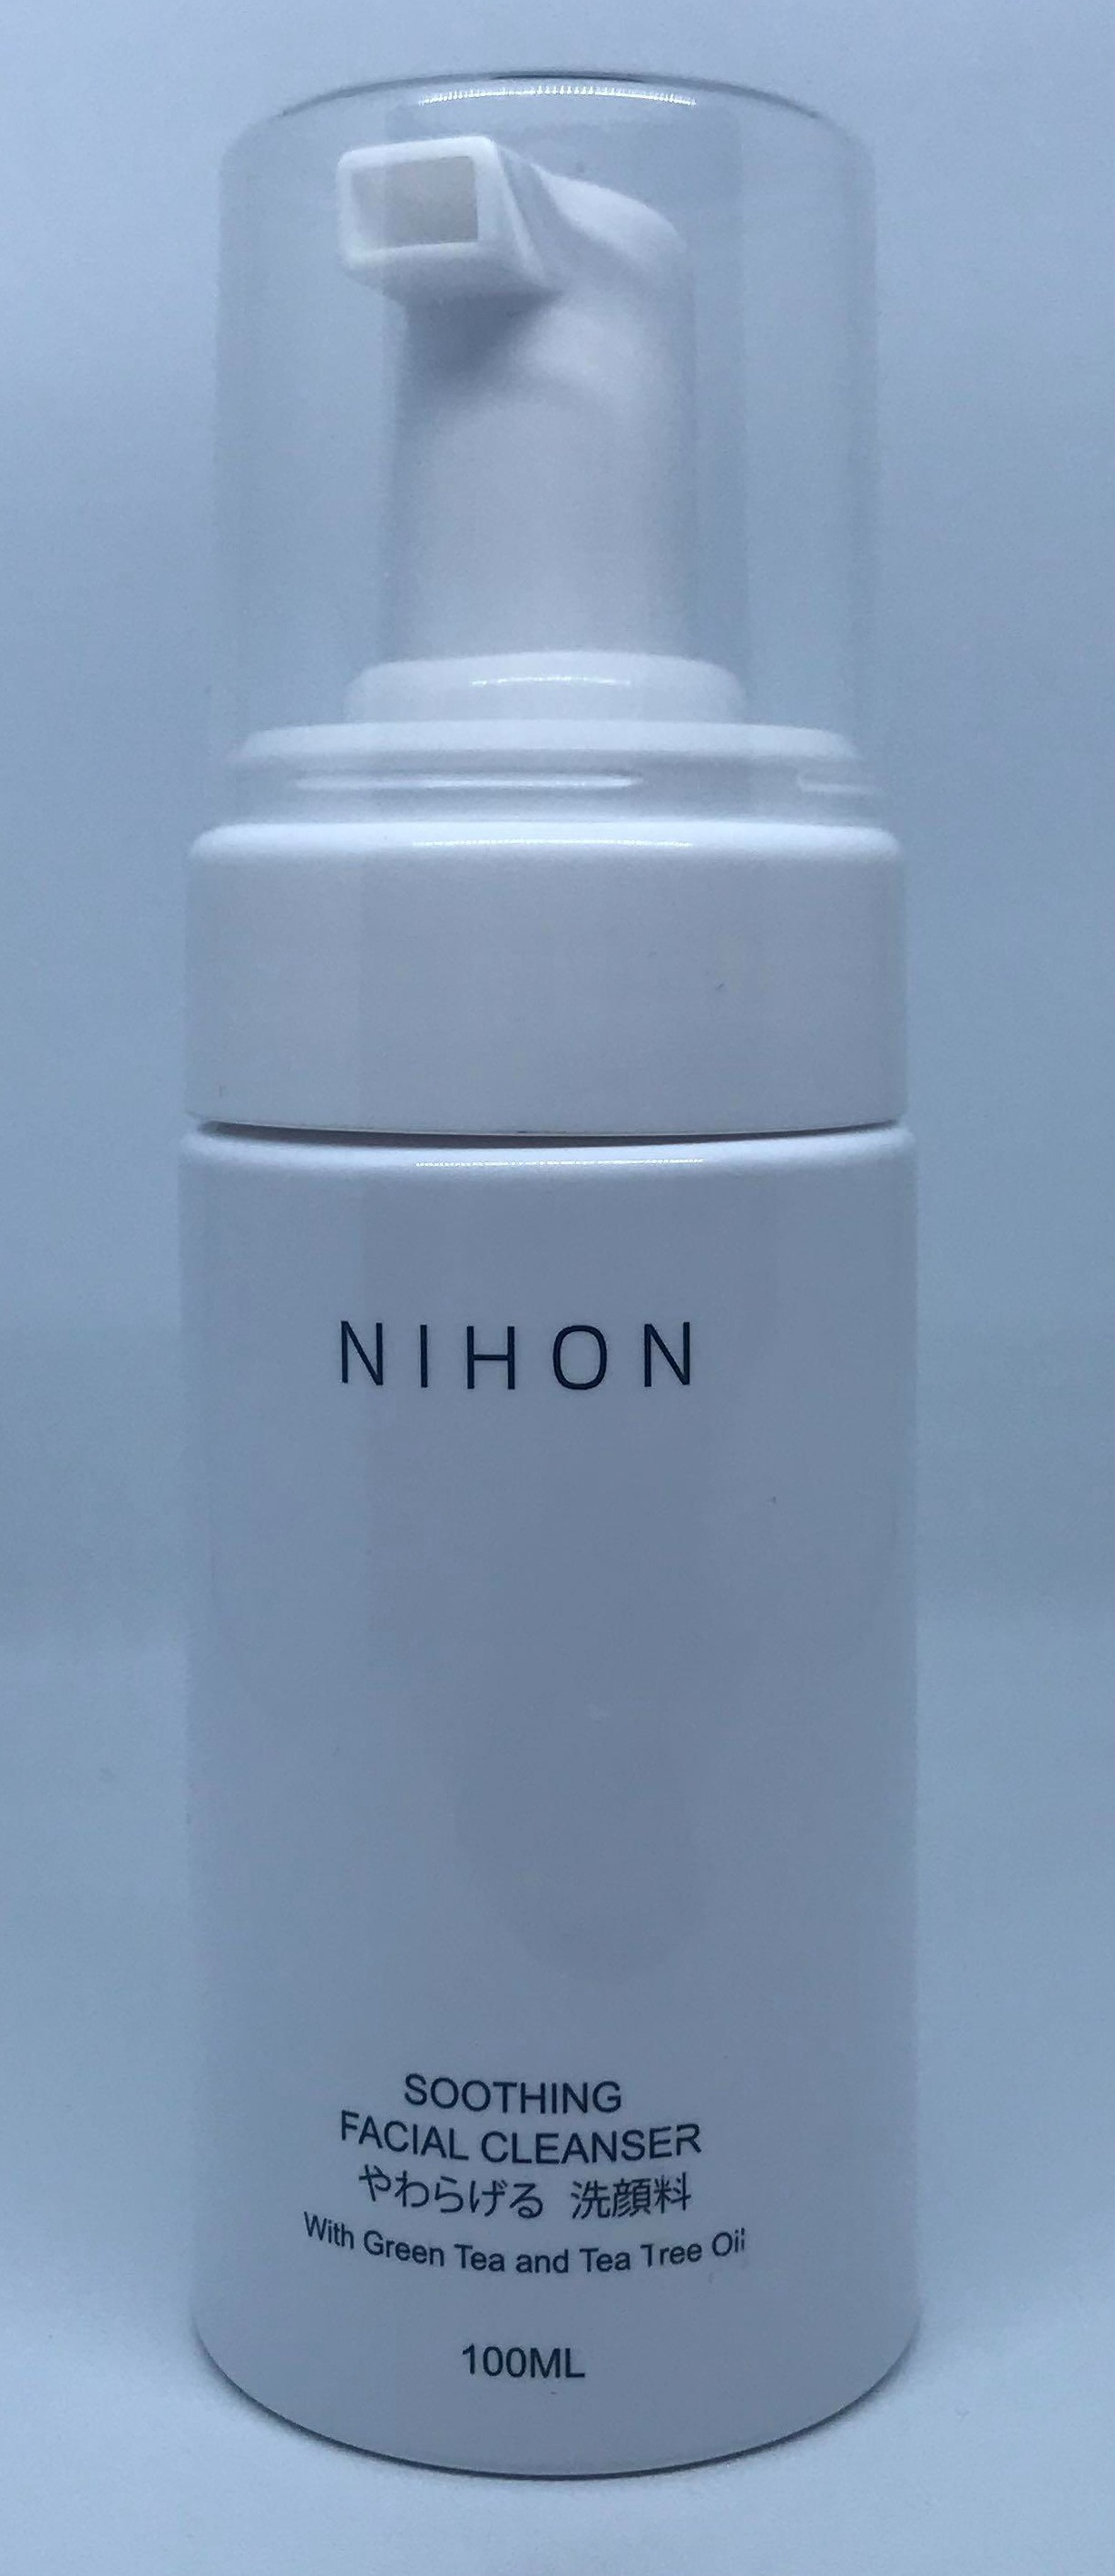 Nihon Soothing Facial Cleanser